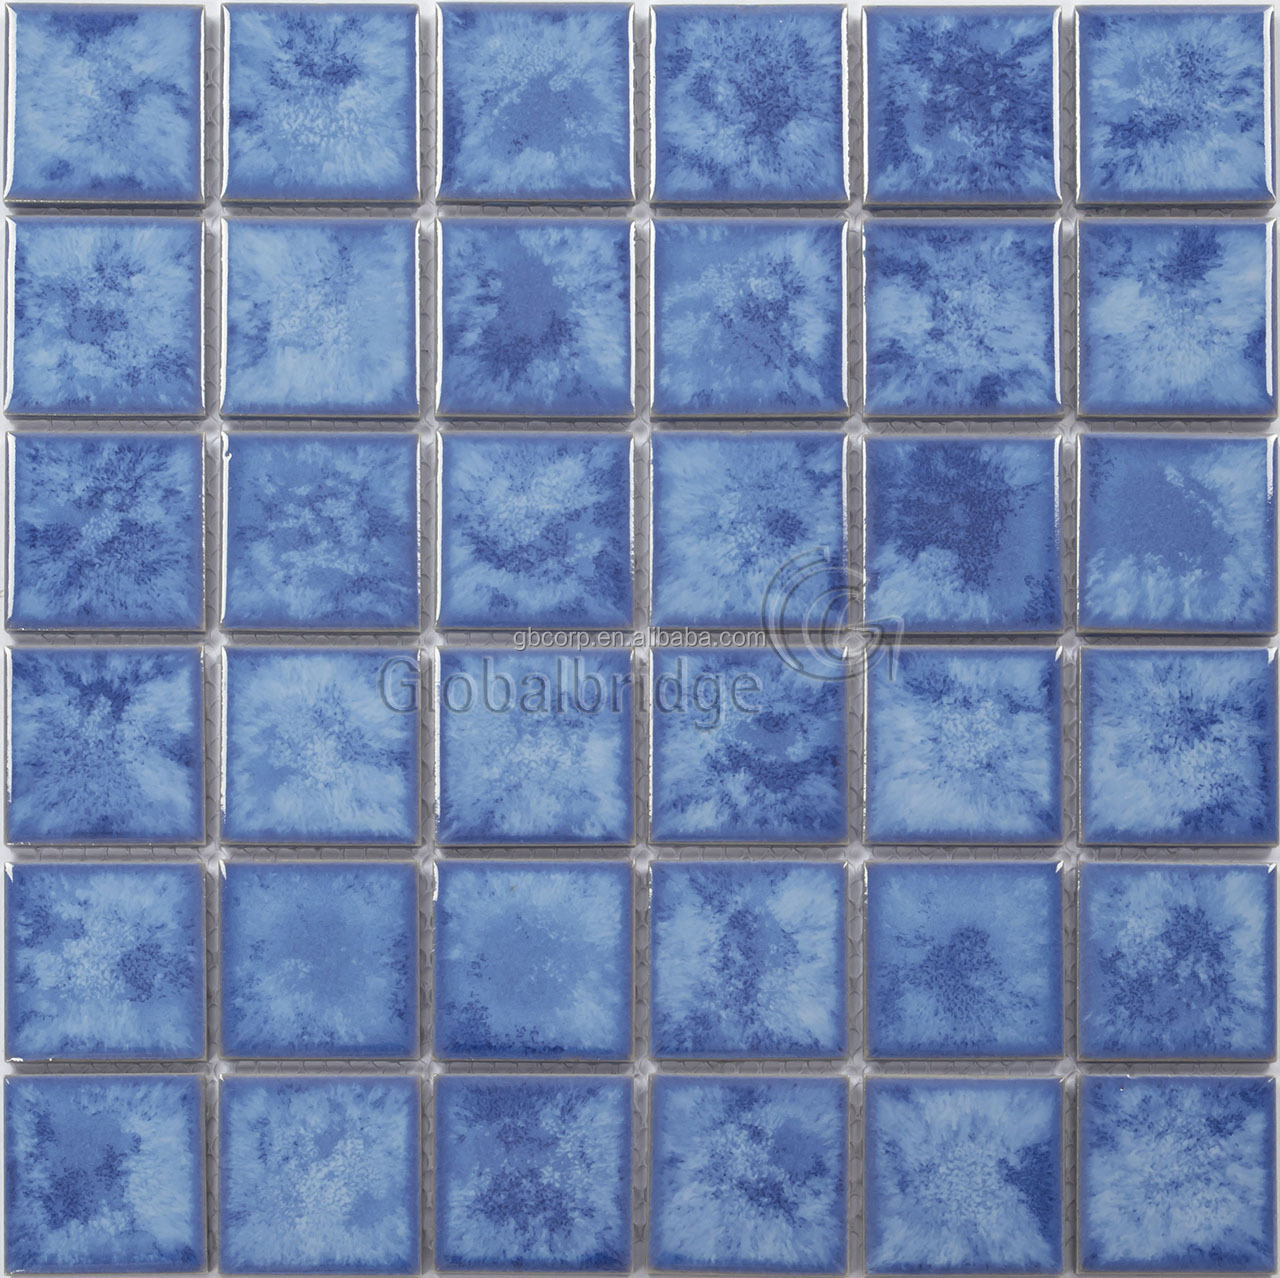 Glazed Blue Ceramic Swimming Pool Tile, Glazed Blue Ceramic Swimming ...